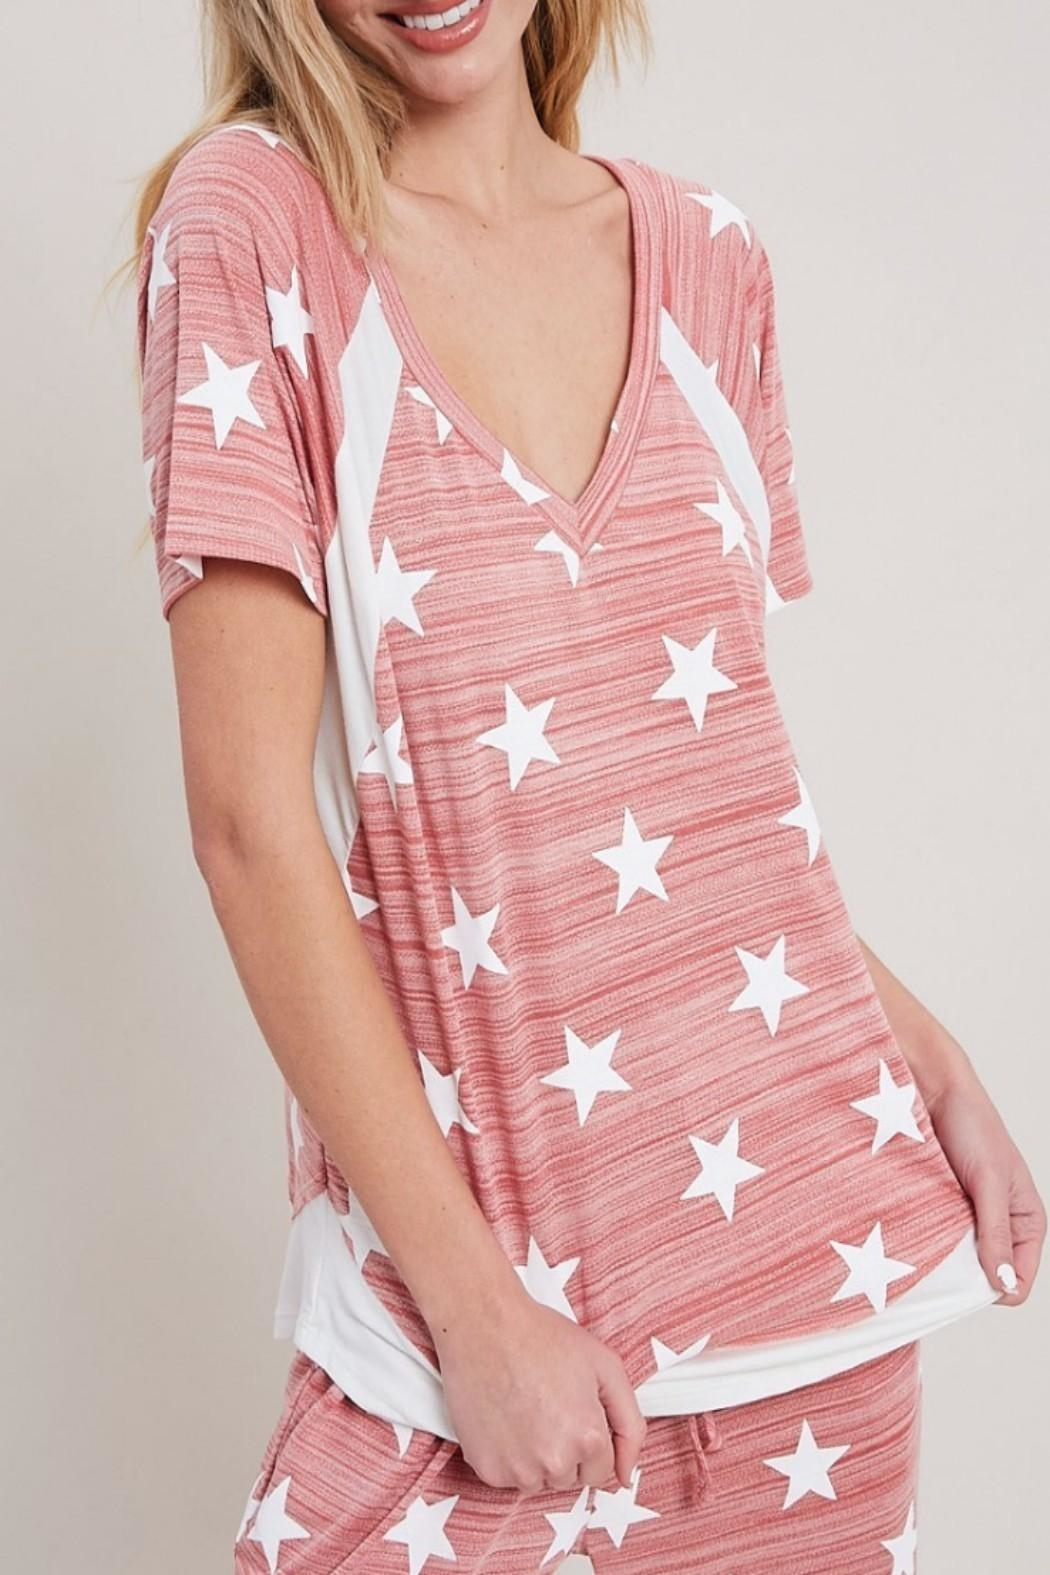 eesome Star Print Top - Side Cropped Image